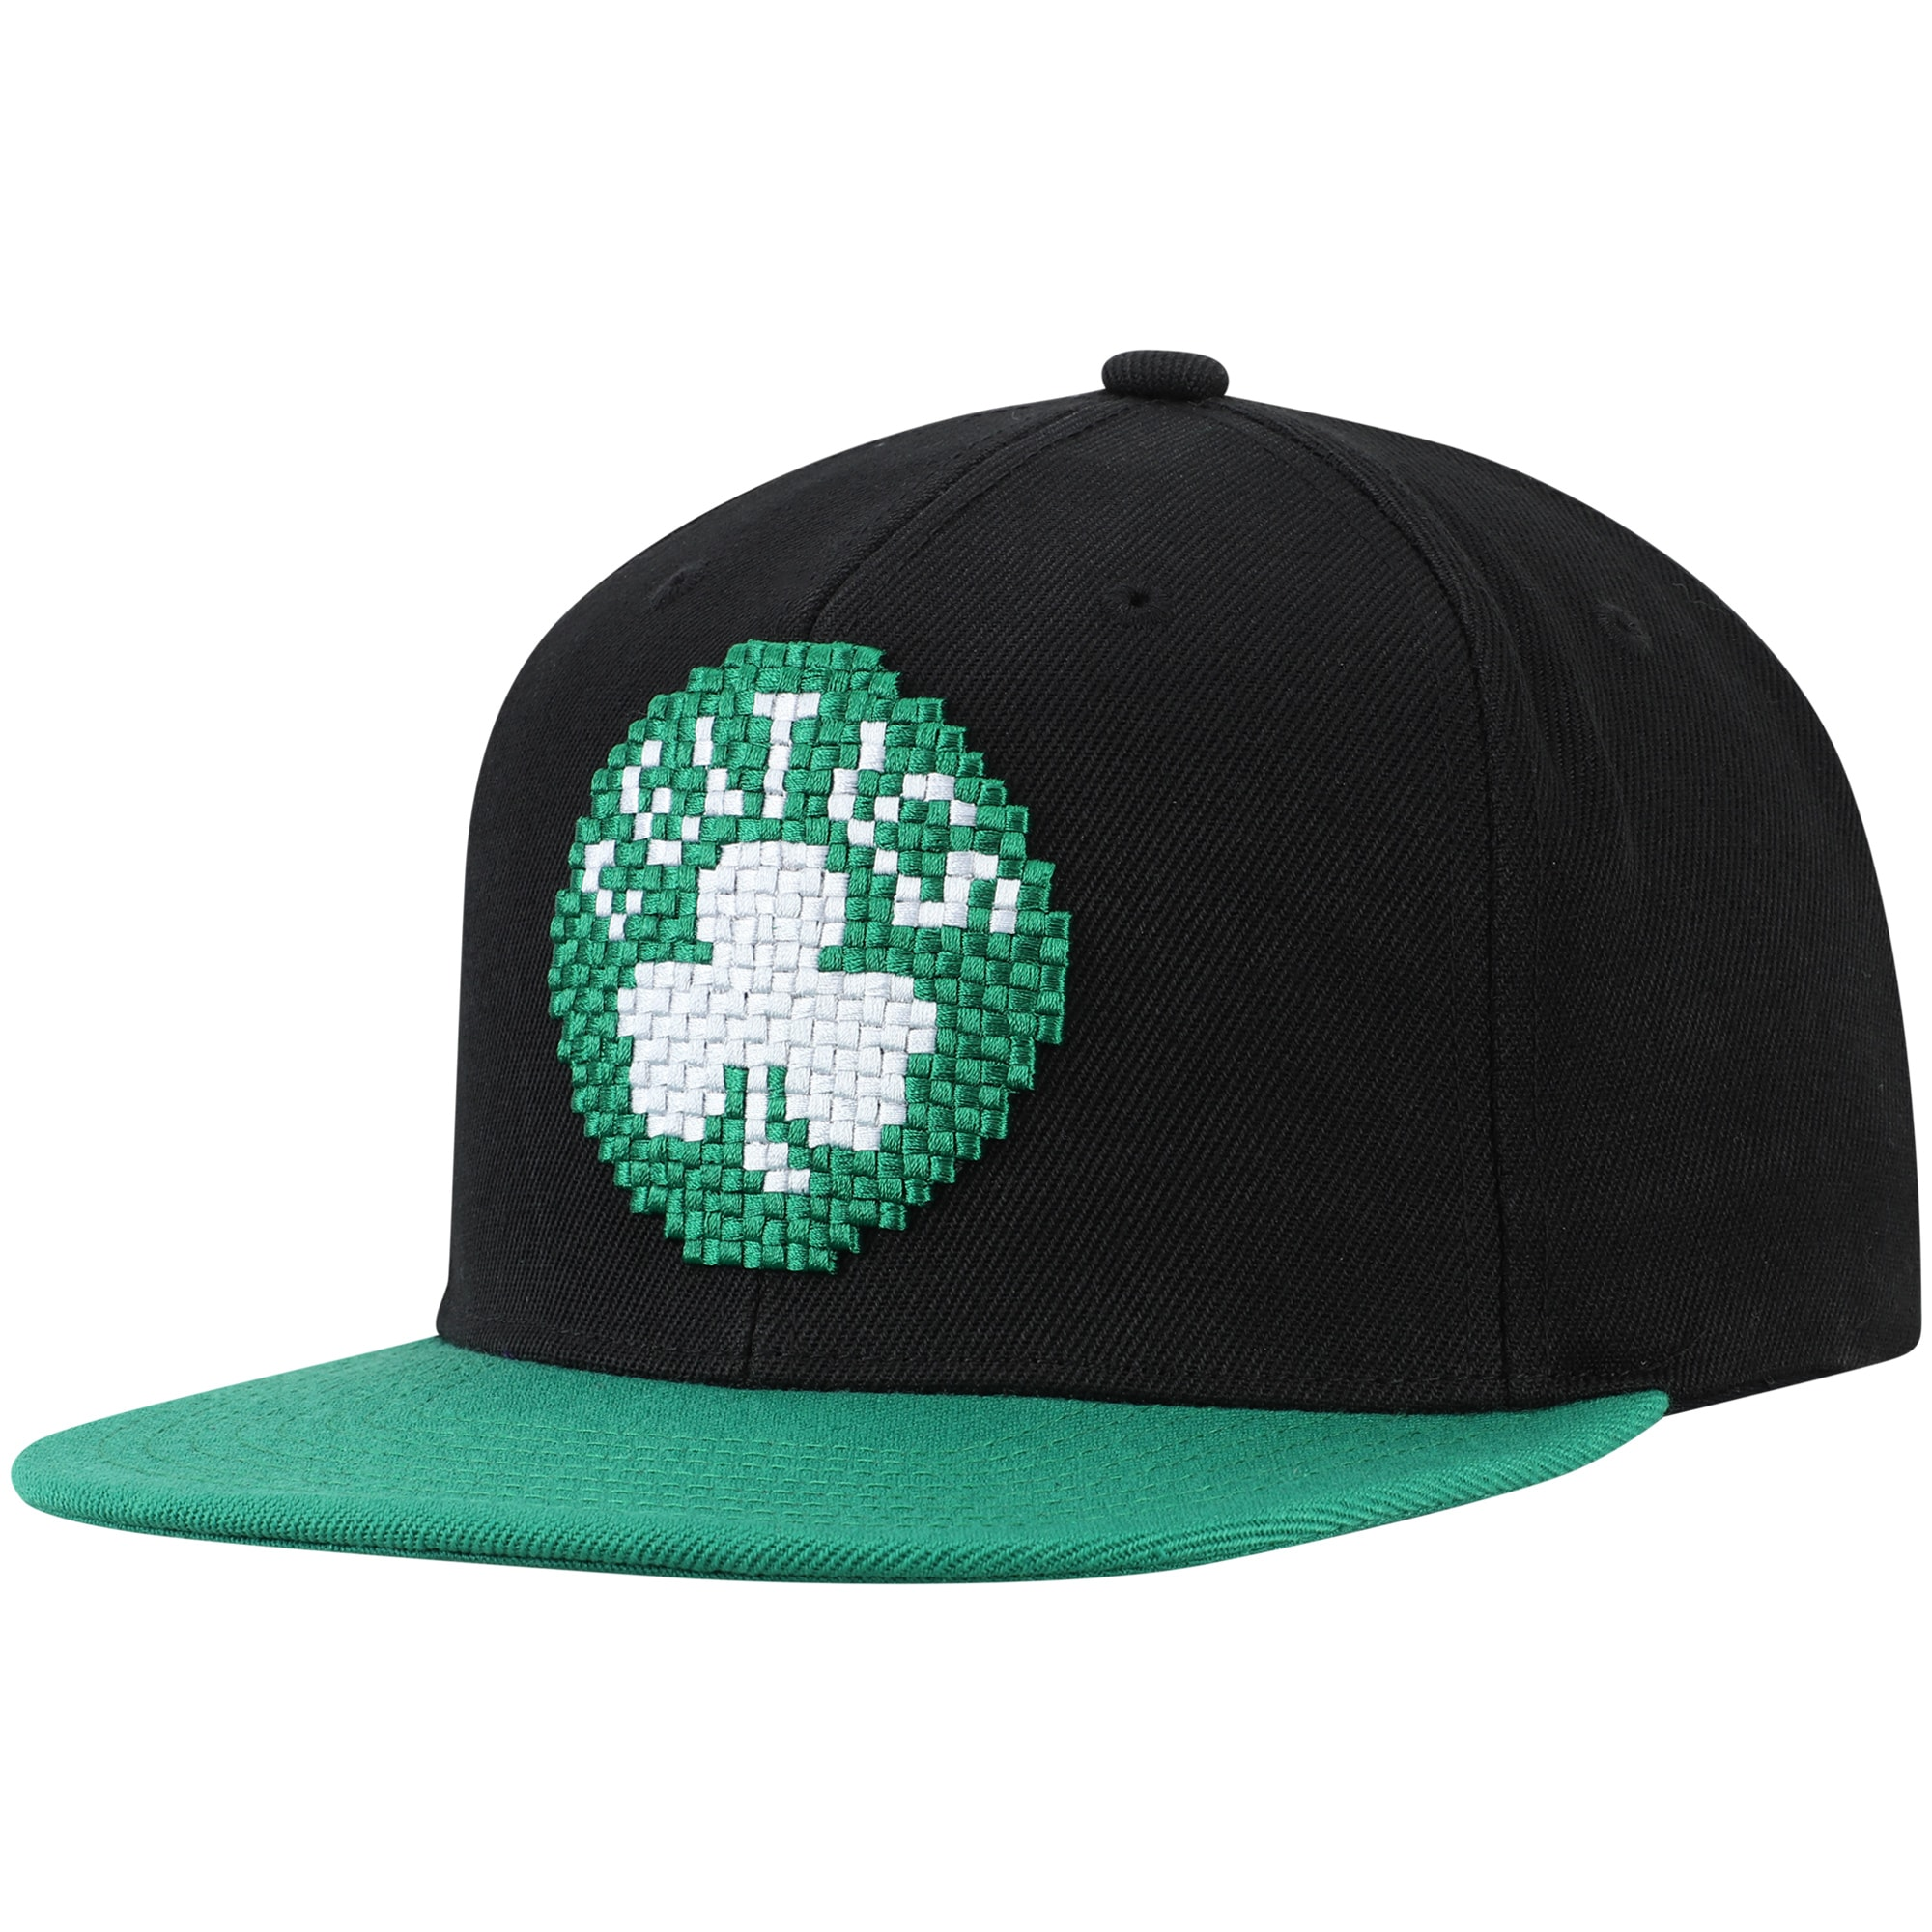 Boston Celtics Mitchell & Ness 8-Bit Two-Tone Adjustable Snapback Hat - Black